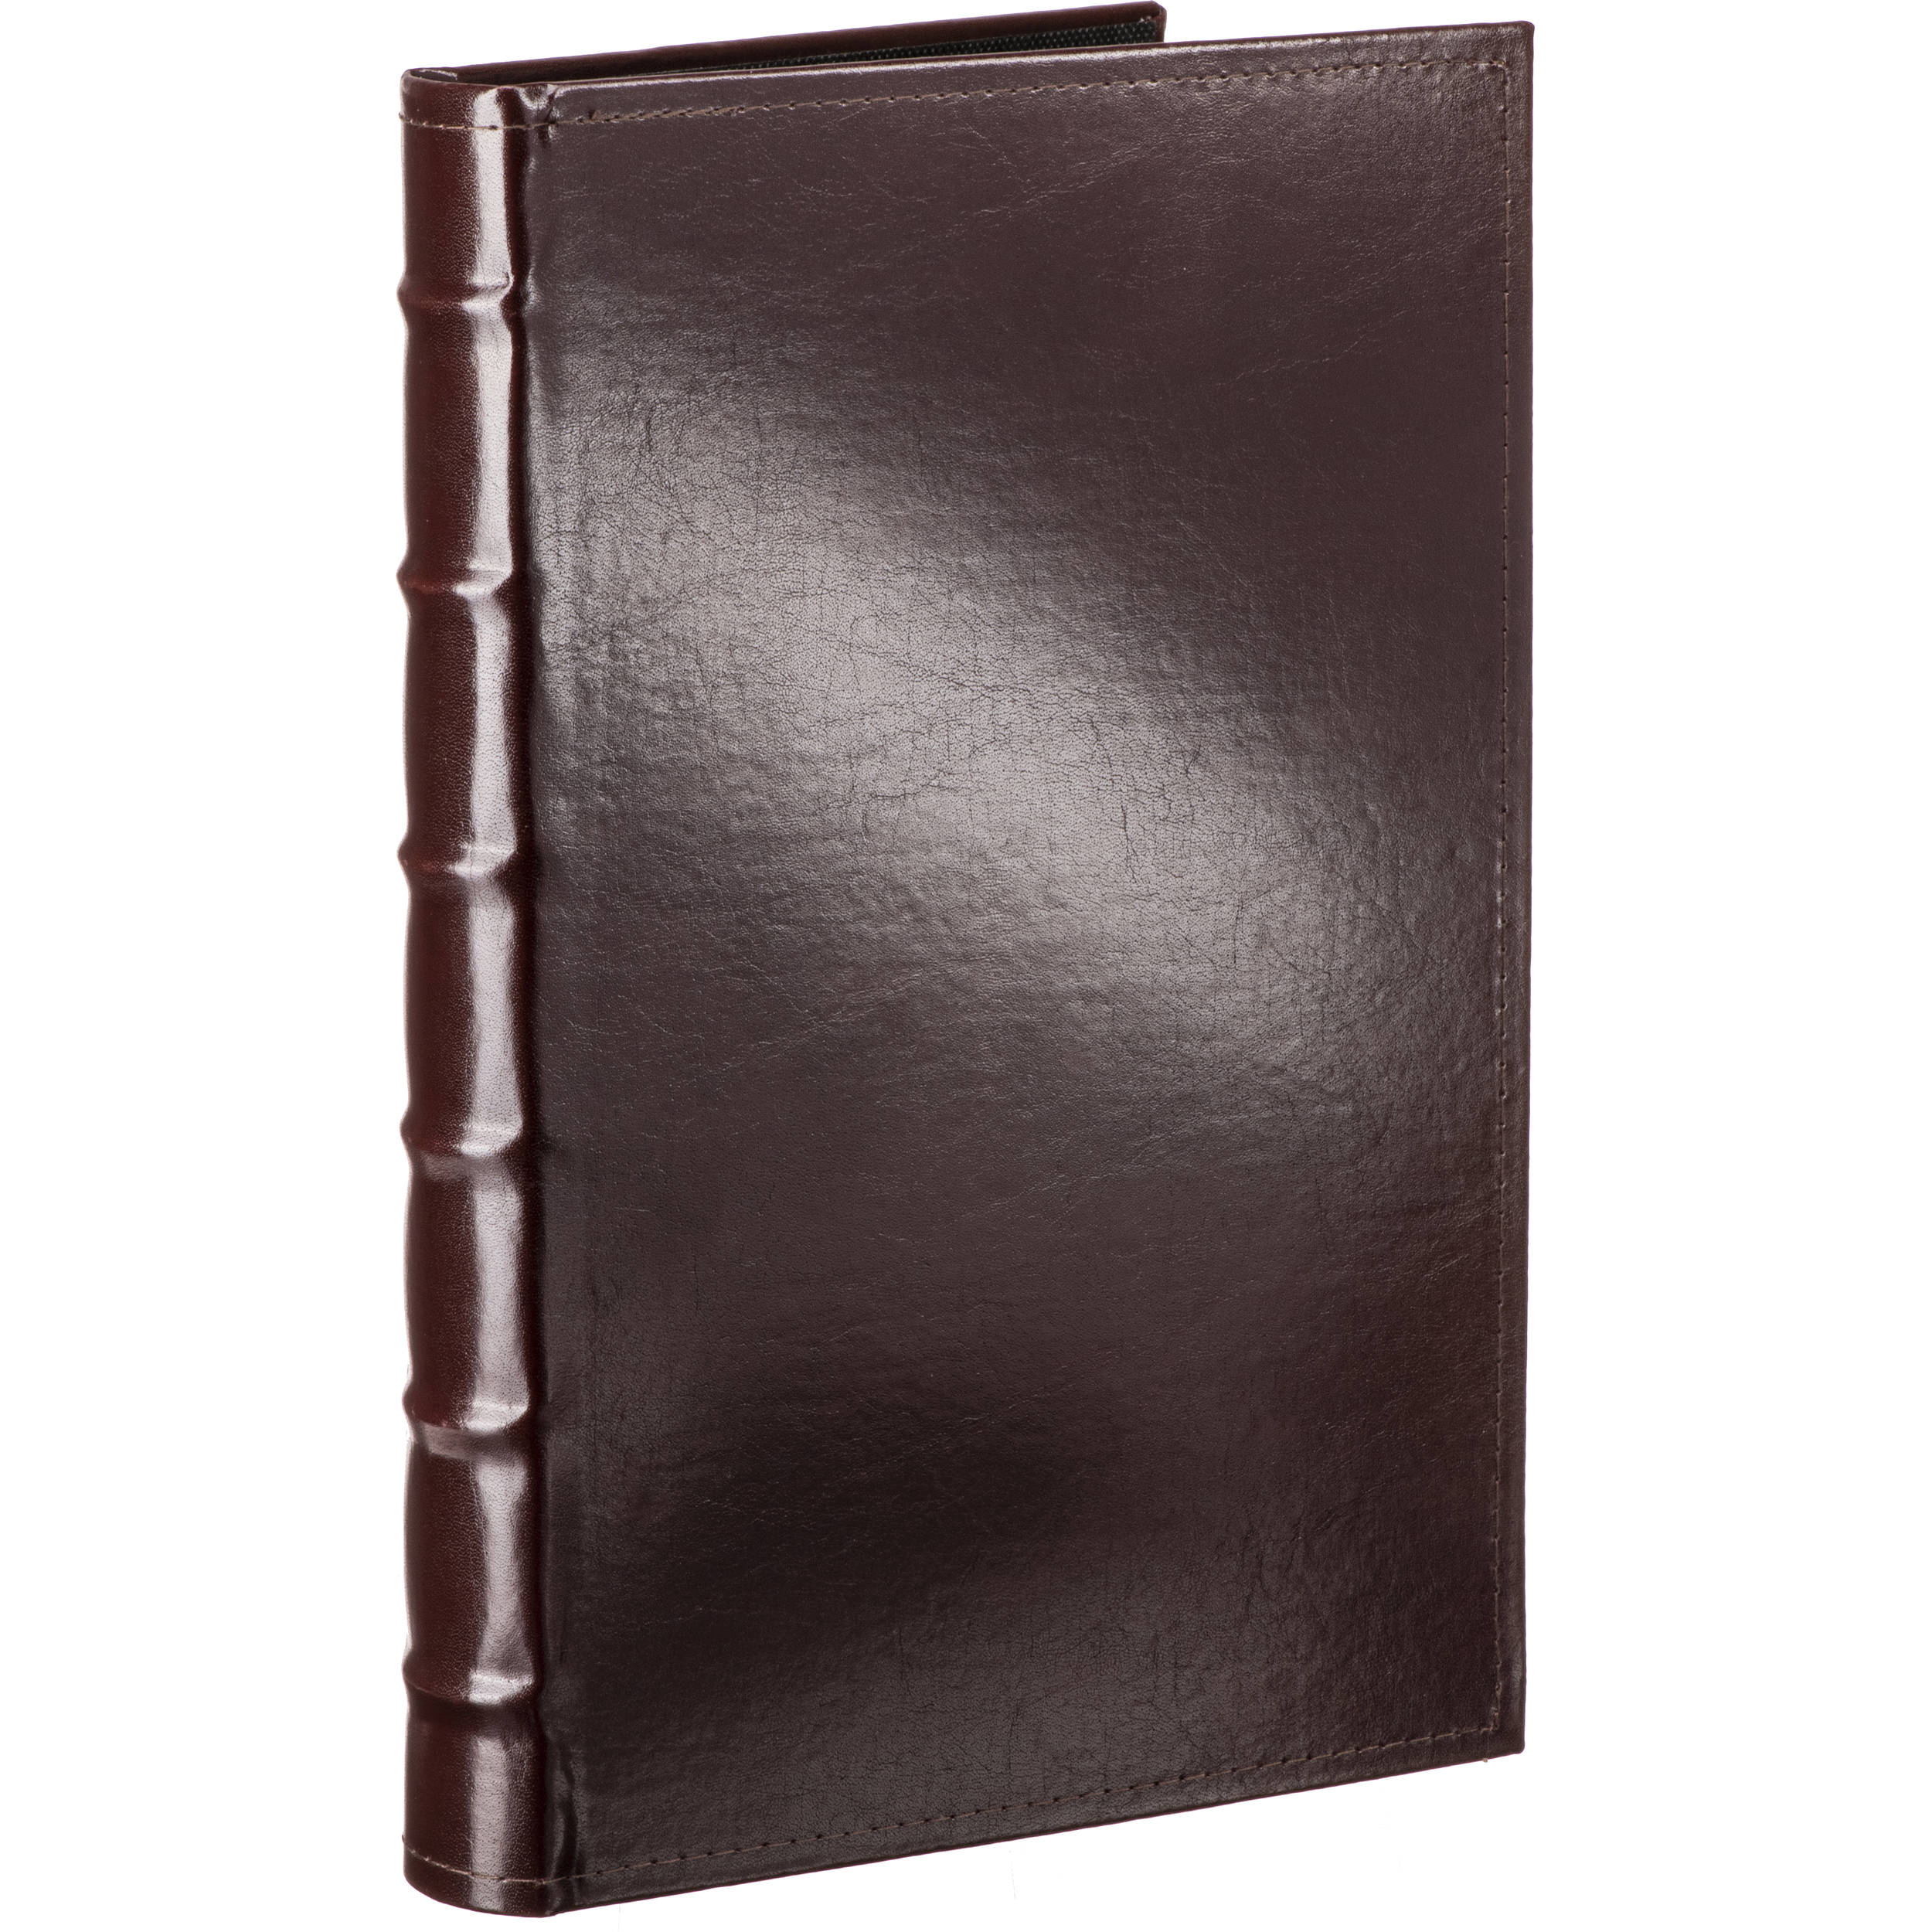 Pioneer Photo Albums Clb 346 Sewn Bonded Leather Clb346br Bh